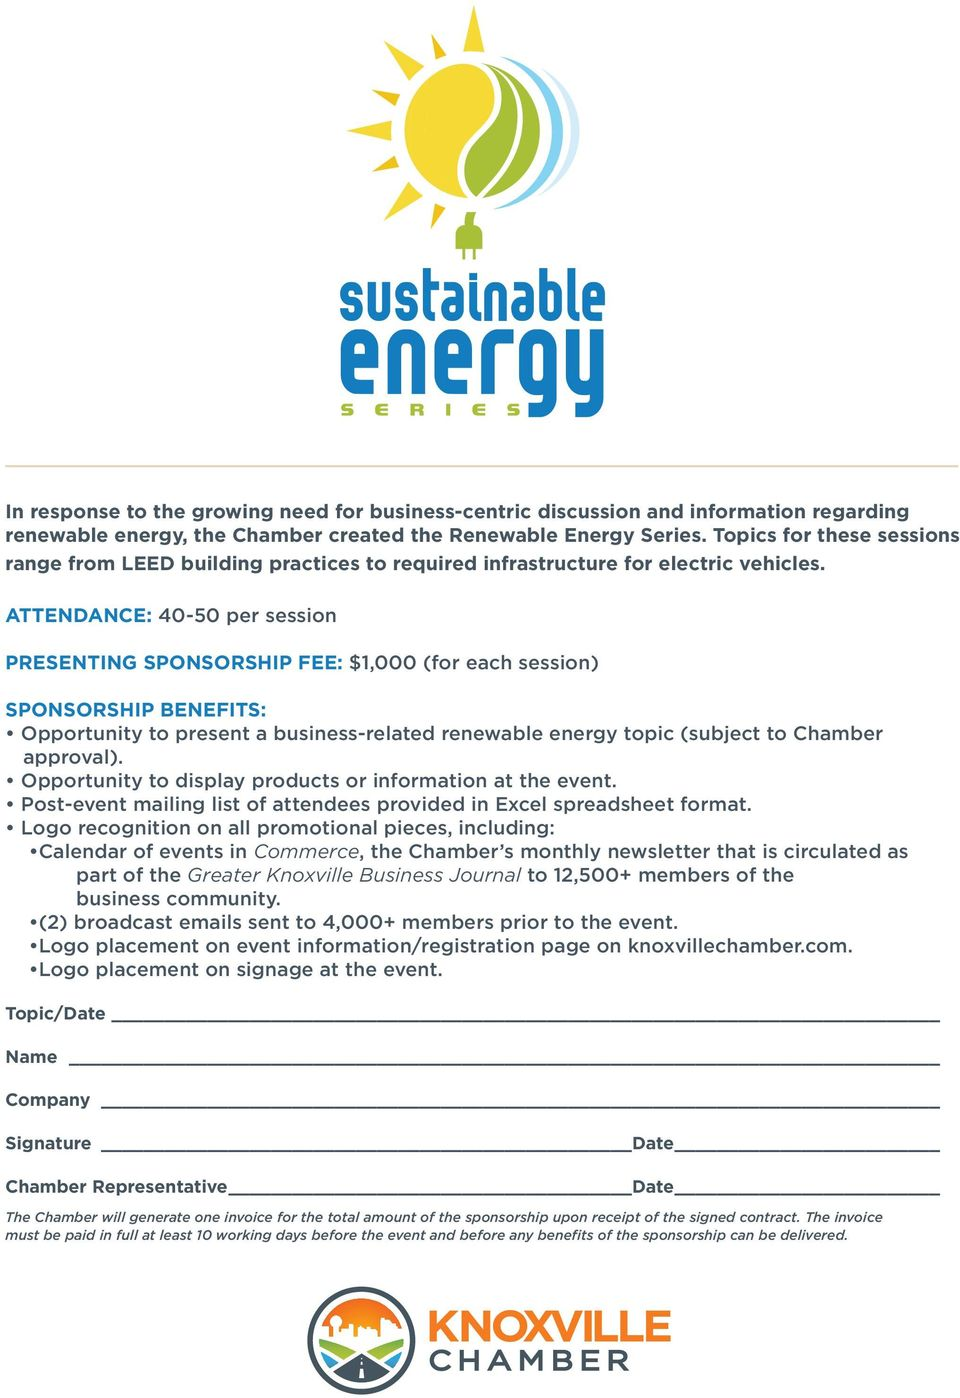 ATTENDANCE: 40-50 per session PRESENTING SPONSORSHIP FEE: $1,000 (for each session) SPONSORSHIP BENEFITS: Opportunity to present a business-related renewable energy topic (subject to Chamber